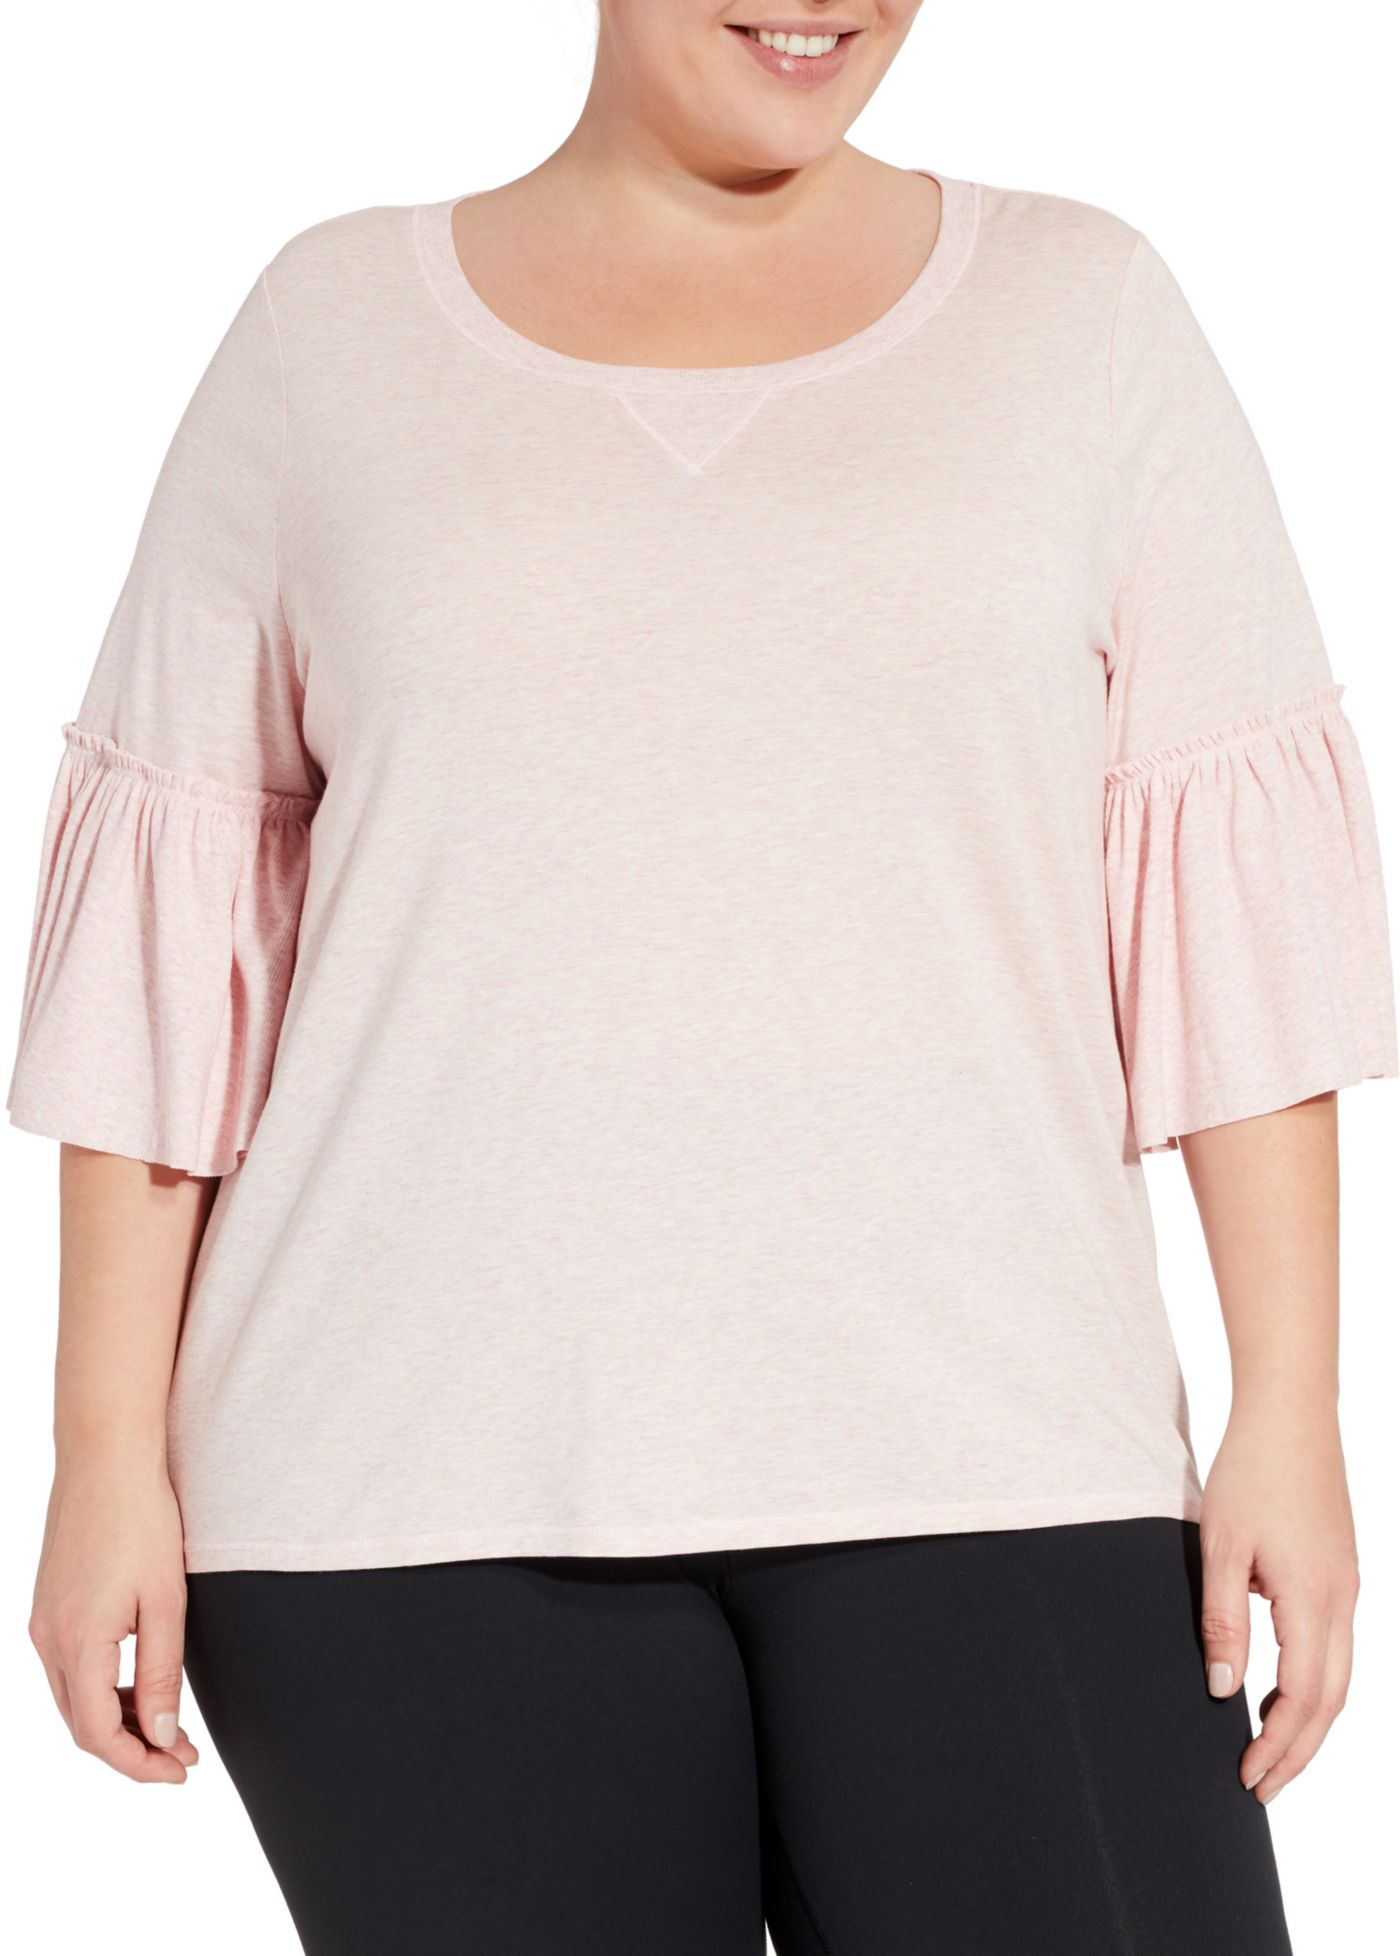 CALIA by Carrie Underwood Women's Plus Size Heather Ruffle T-Shirt